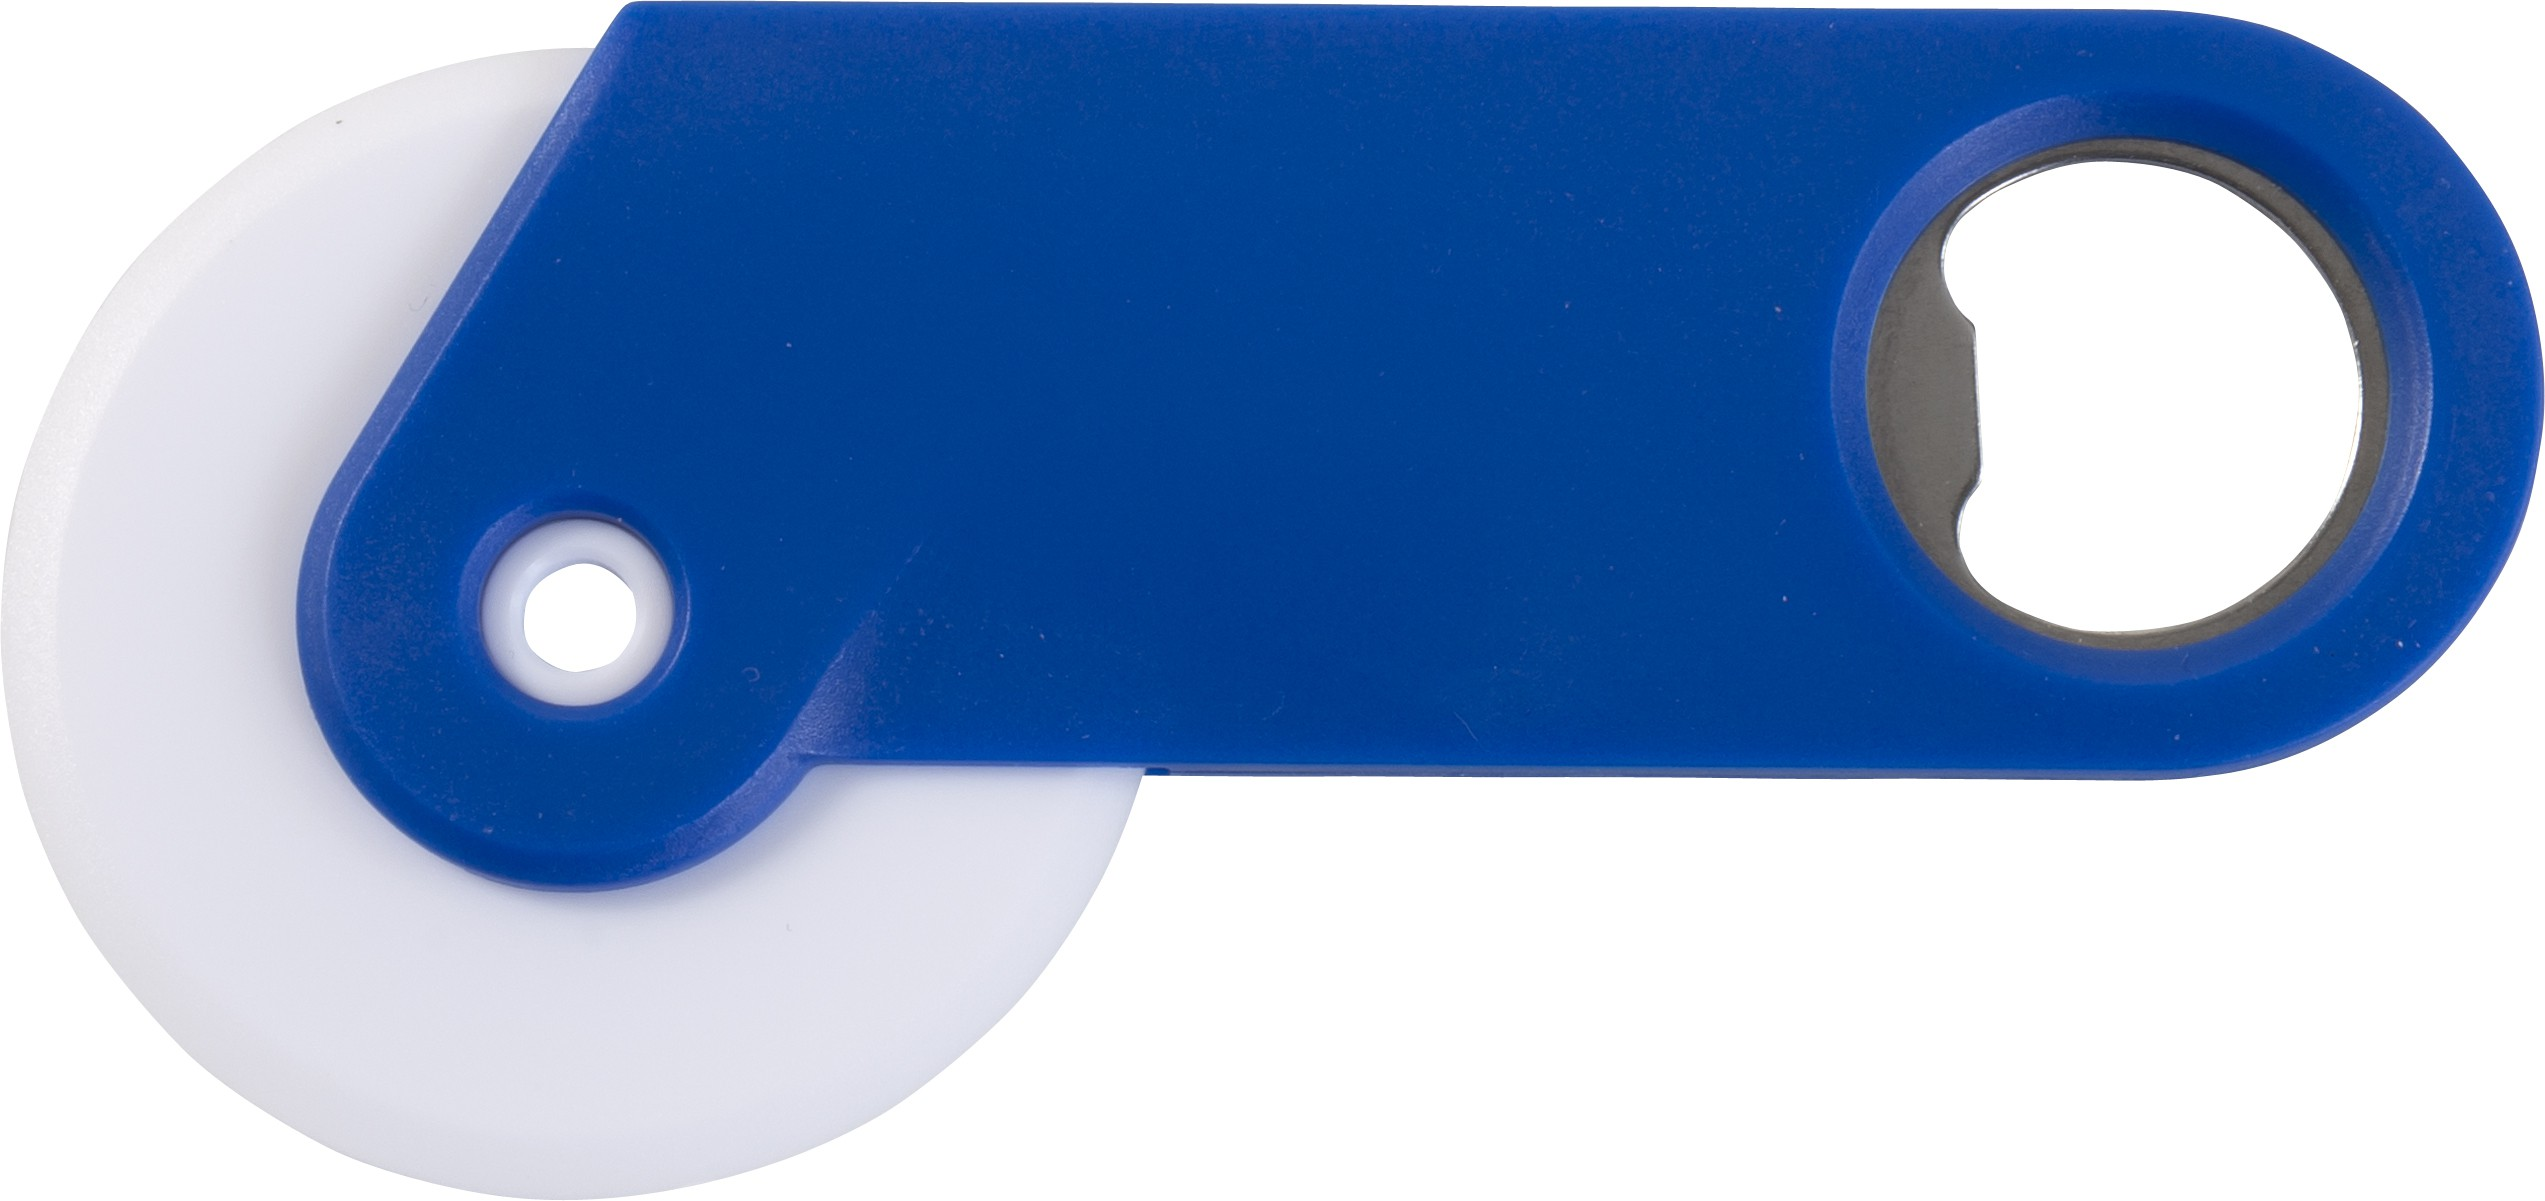 plastic pizza cutter and bottle opener in one cobalt blue kitchen plastic